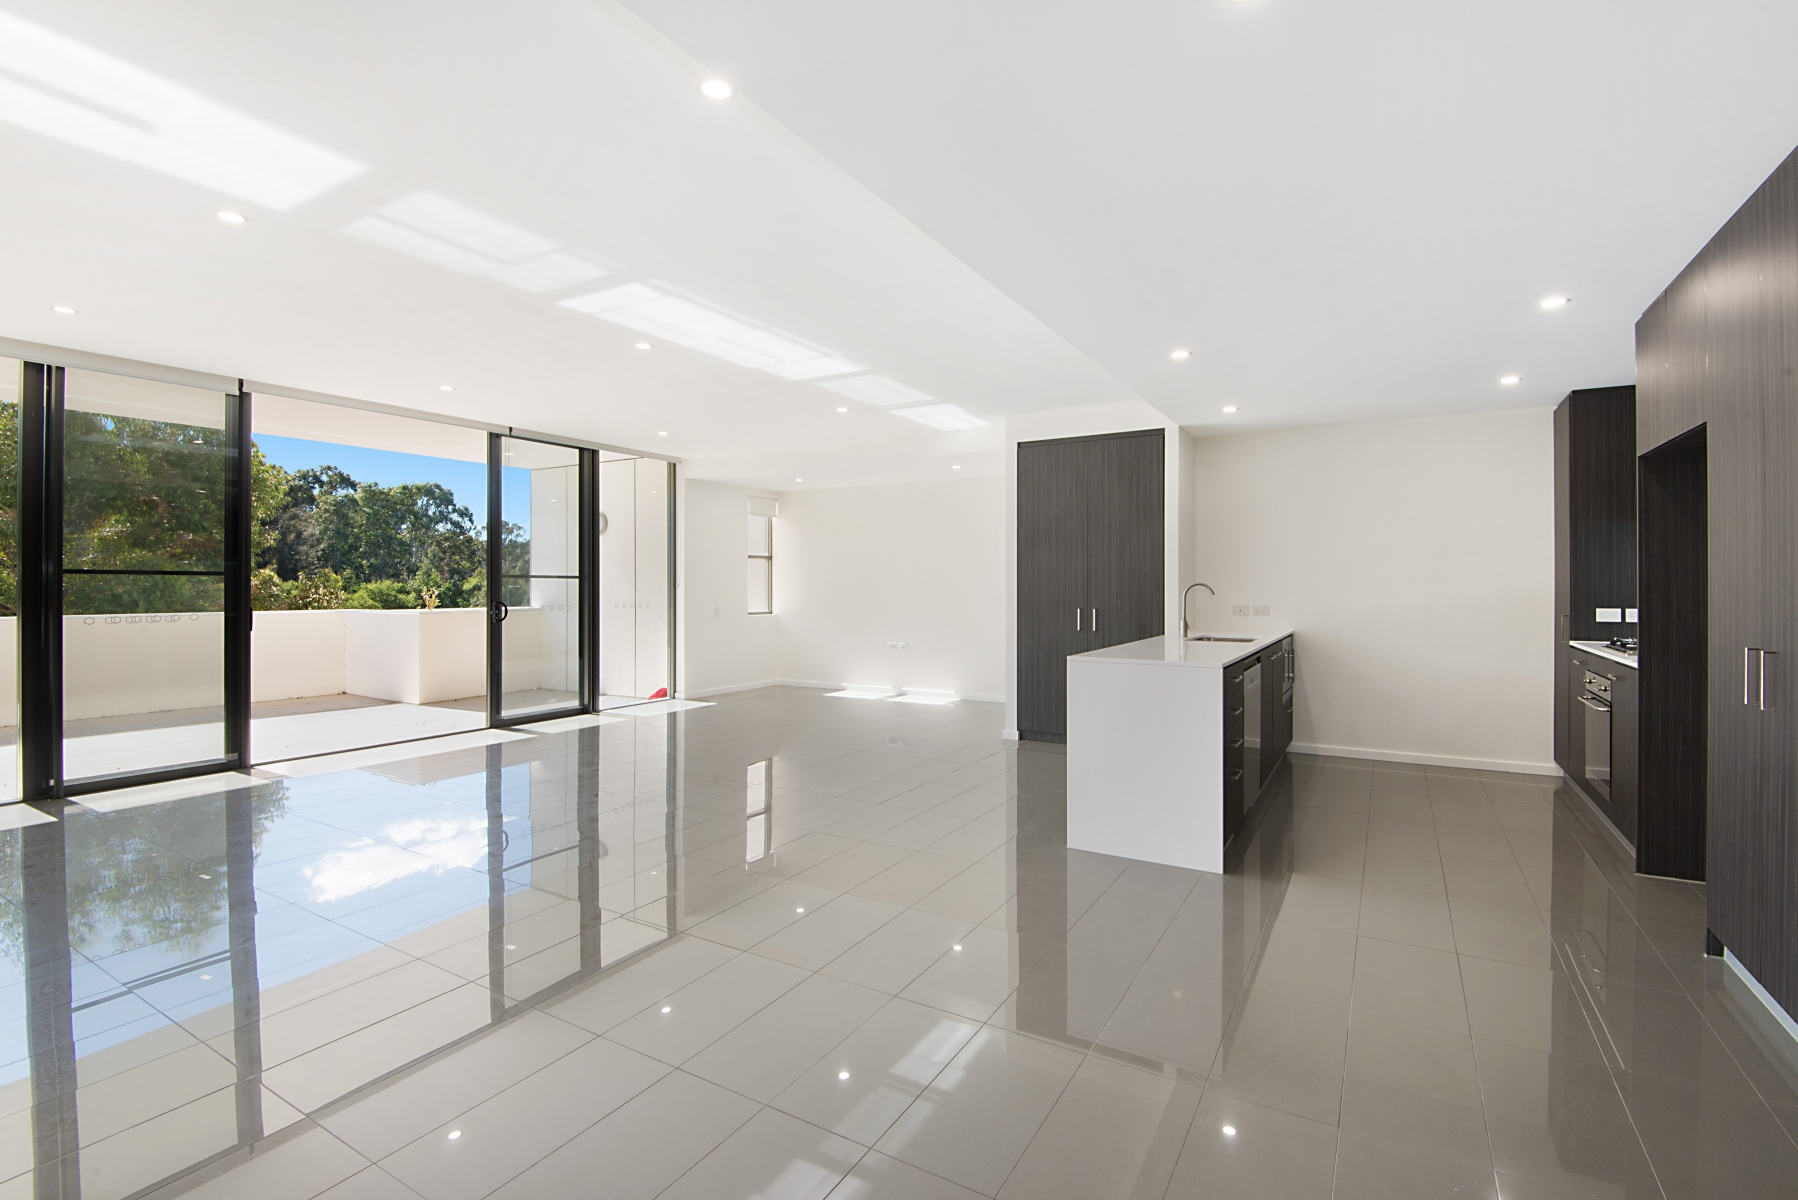 2 Bedrooms, Apartment, For Rent, Caddies Boulevard, 2 Bathrooms, Listing ID 1489, Rouse Hill , NSW, Australia, 2155,